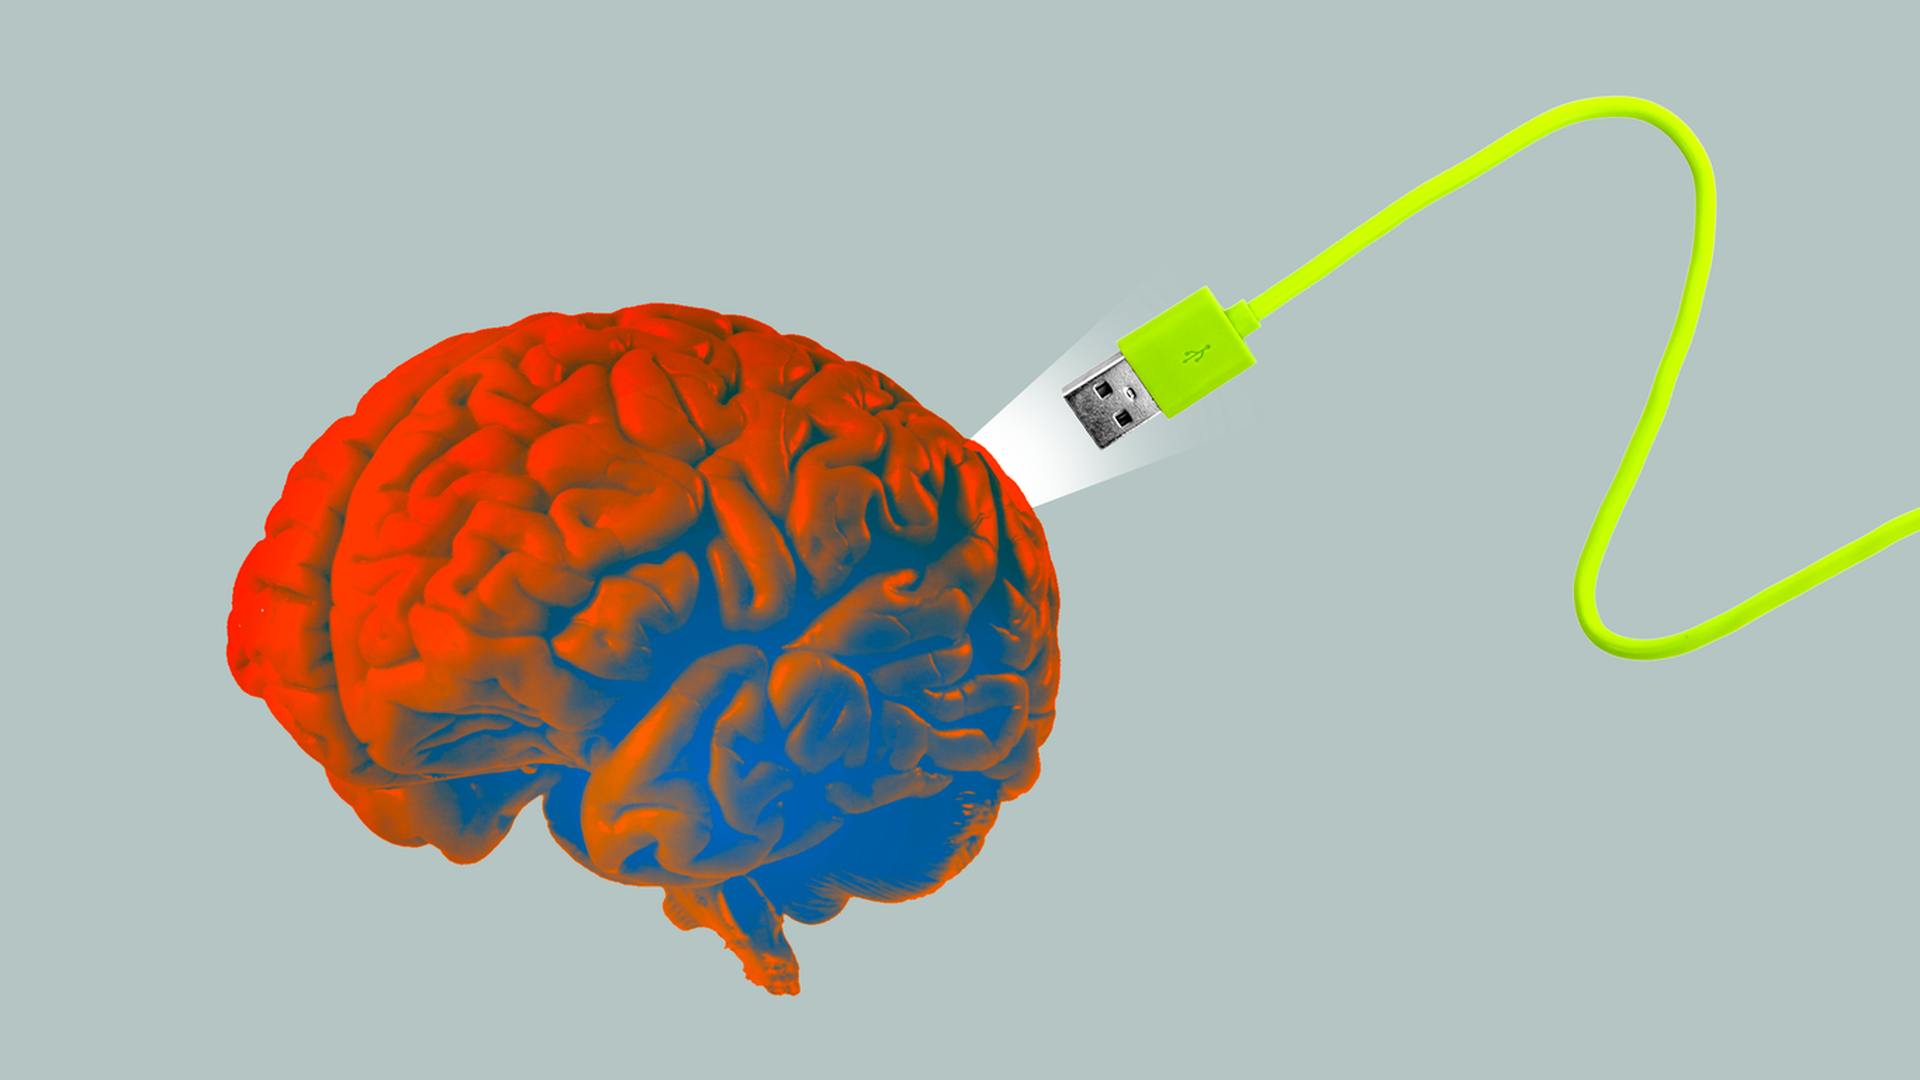 The tricky ethics of neurotechnologies